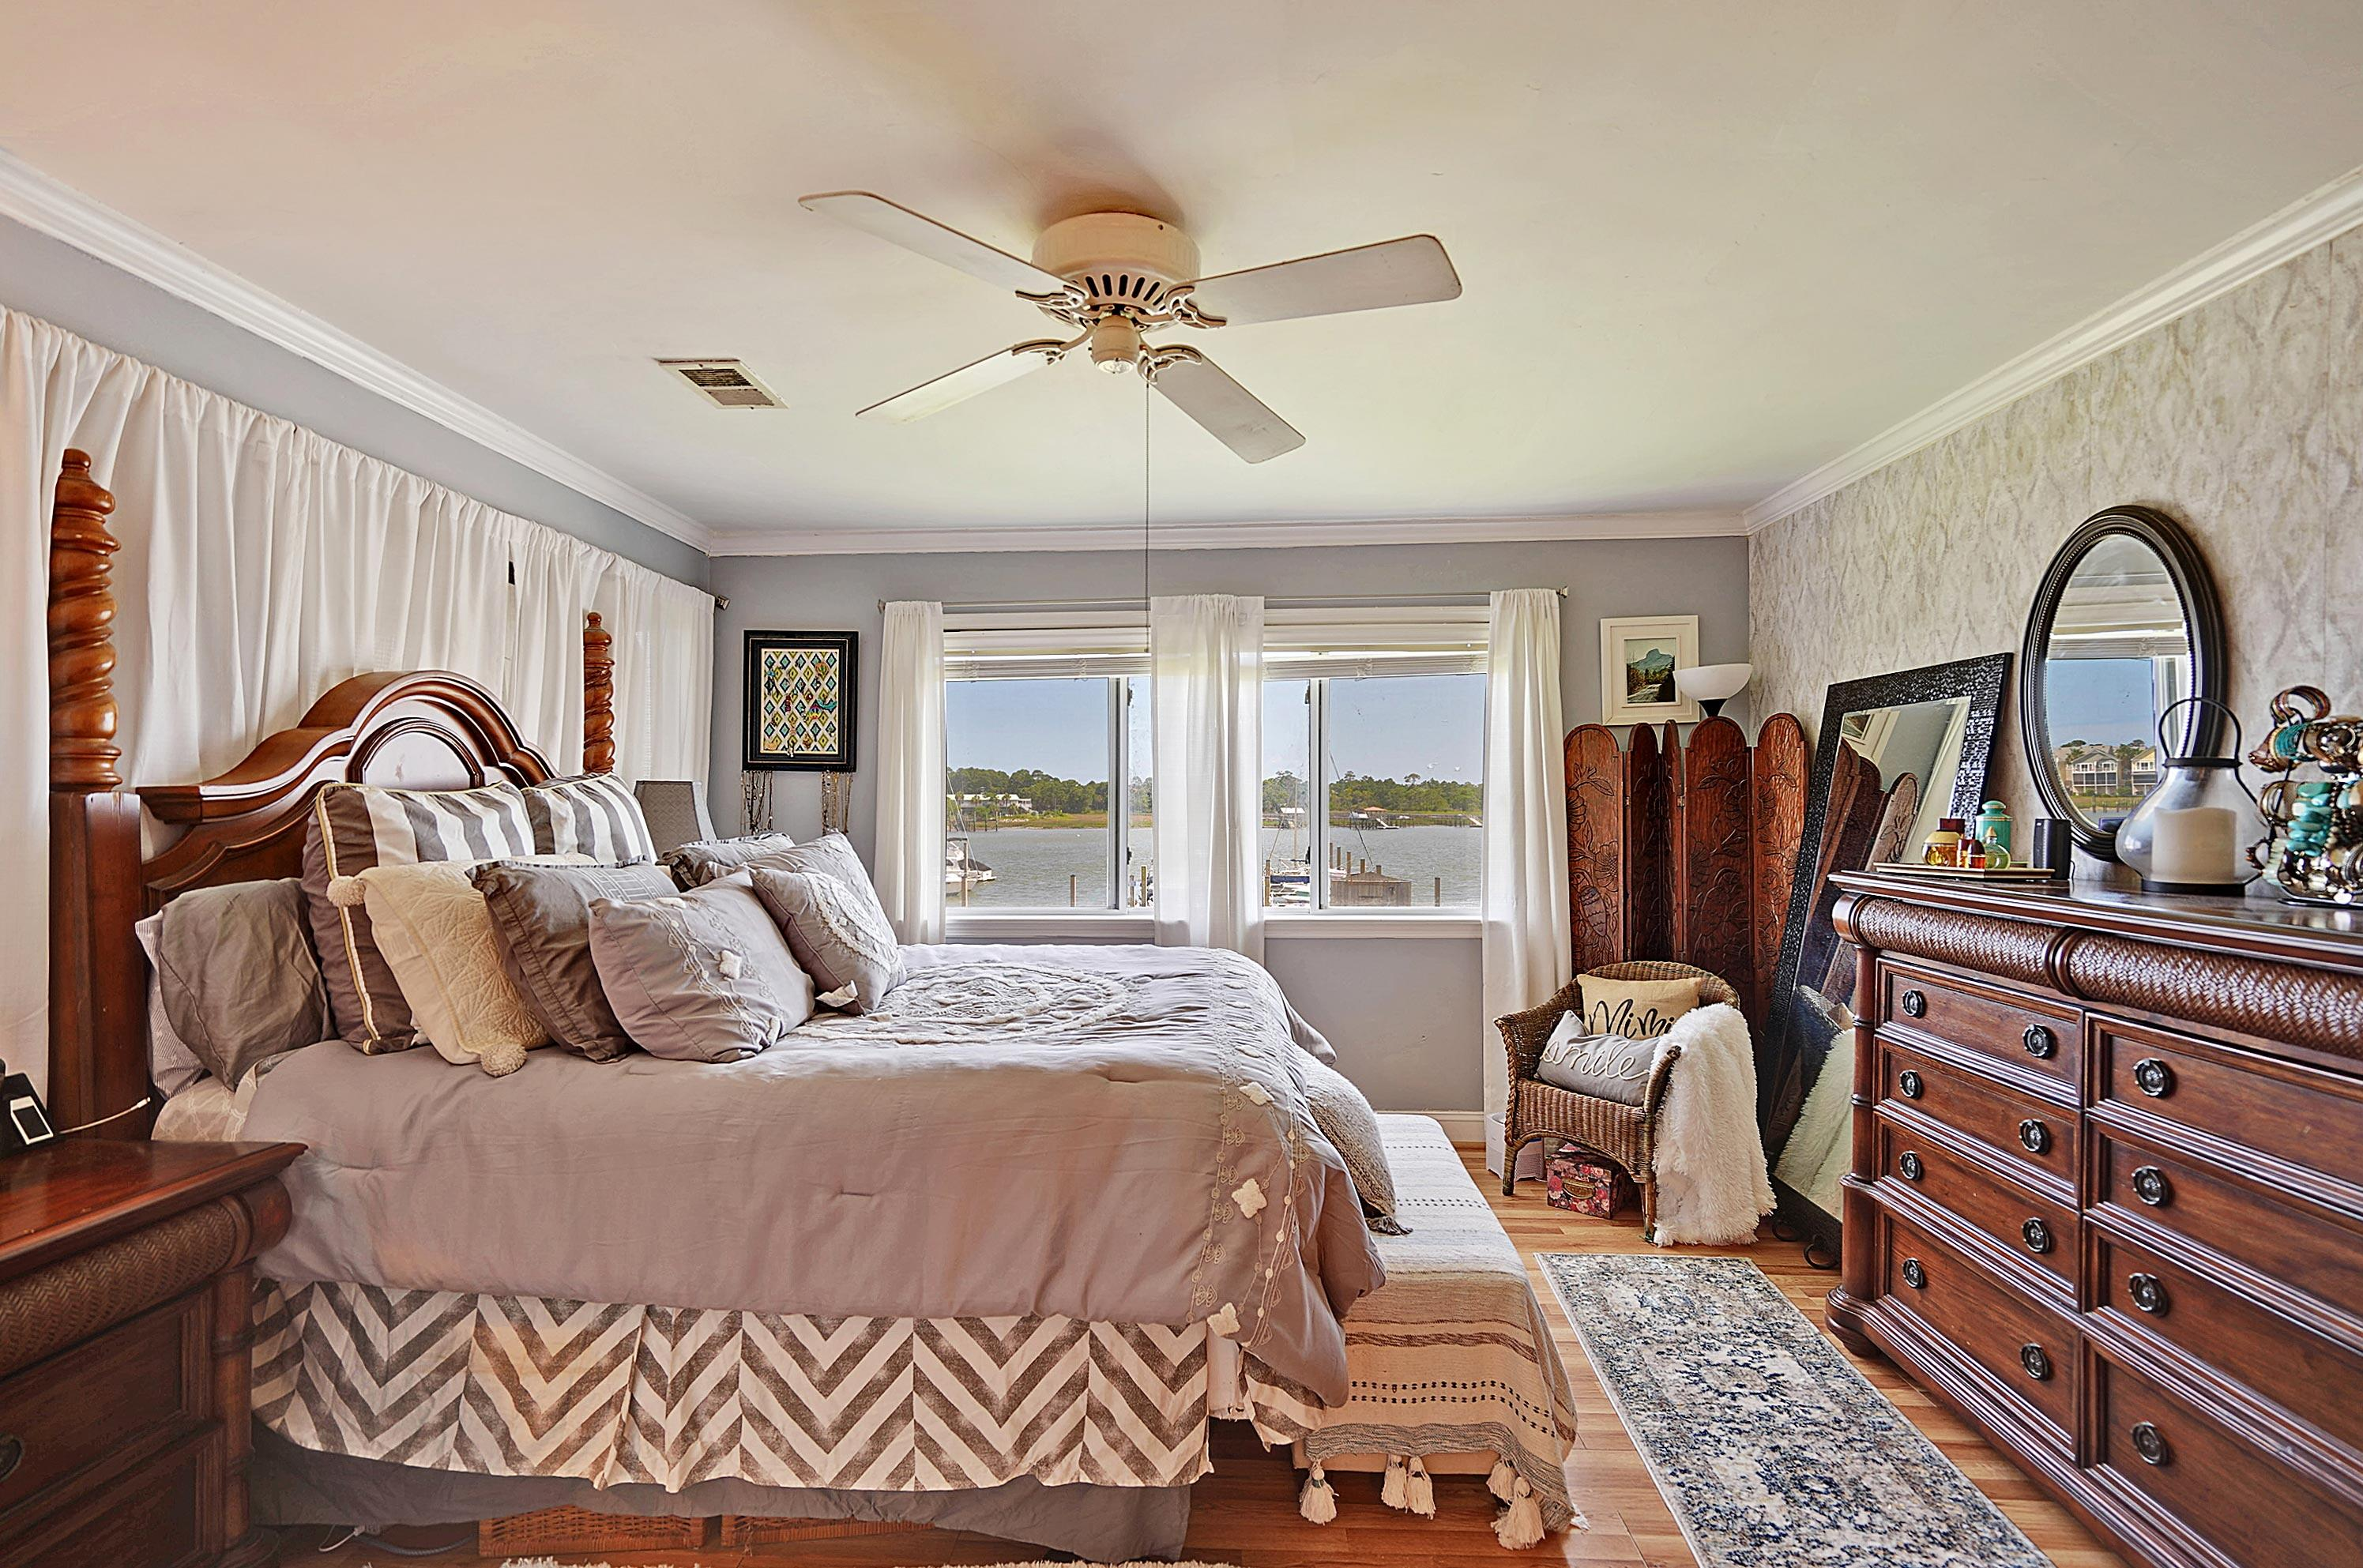 Mariners Cay Homes For Sale - 63 Mariners Cay, Folly Beach, SC - 27